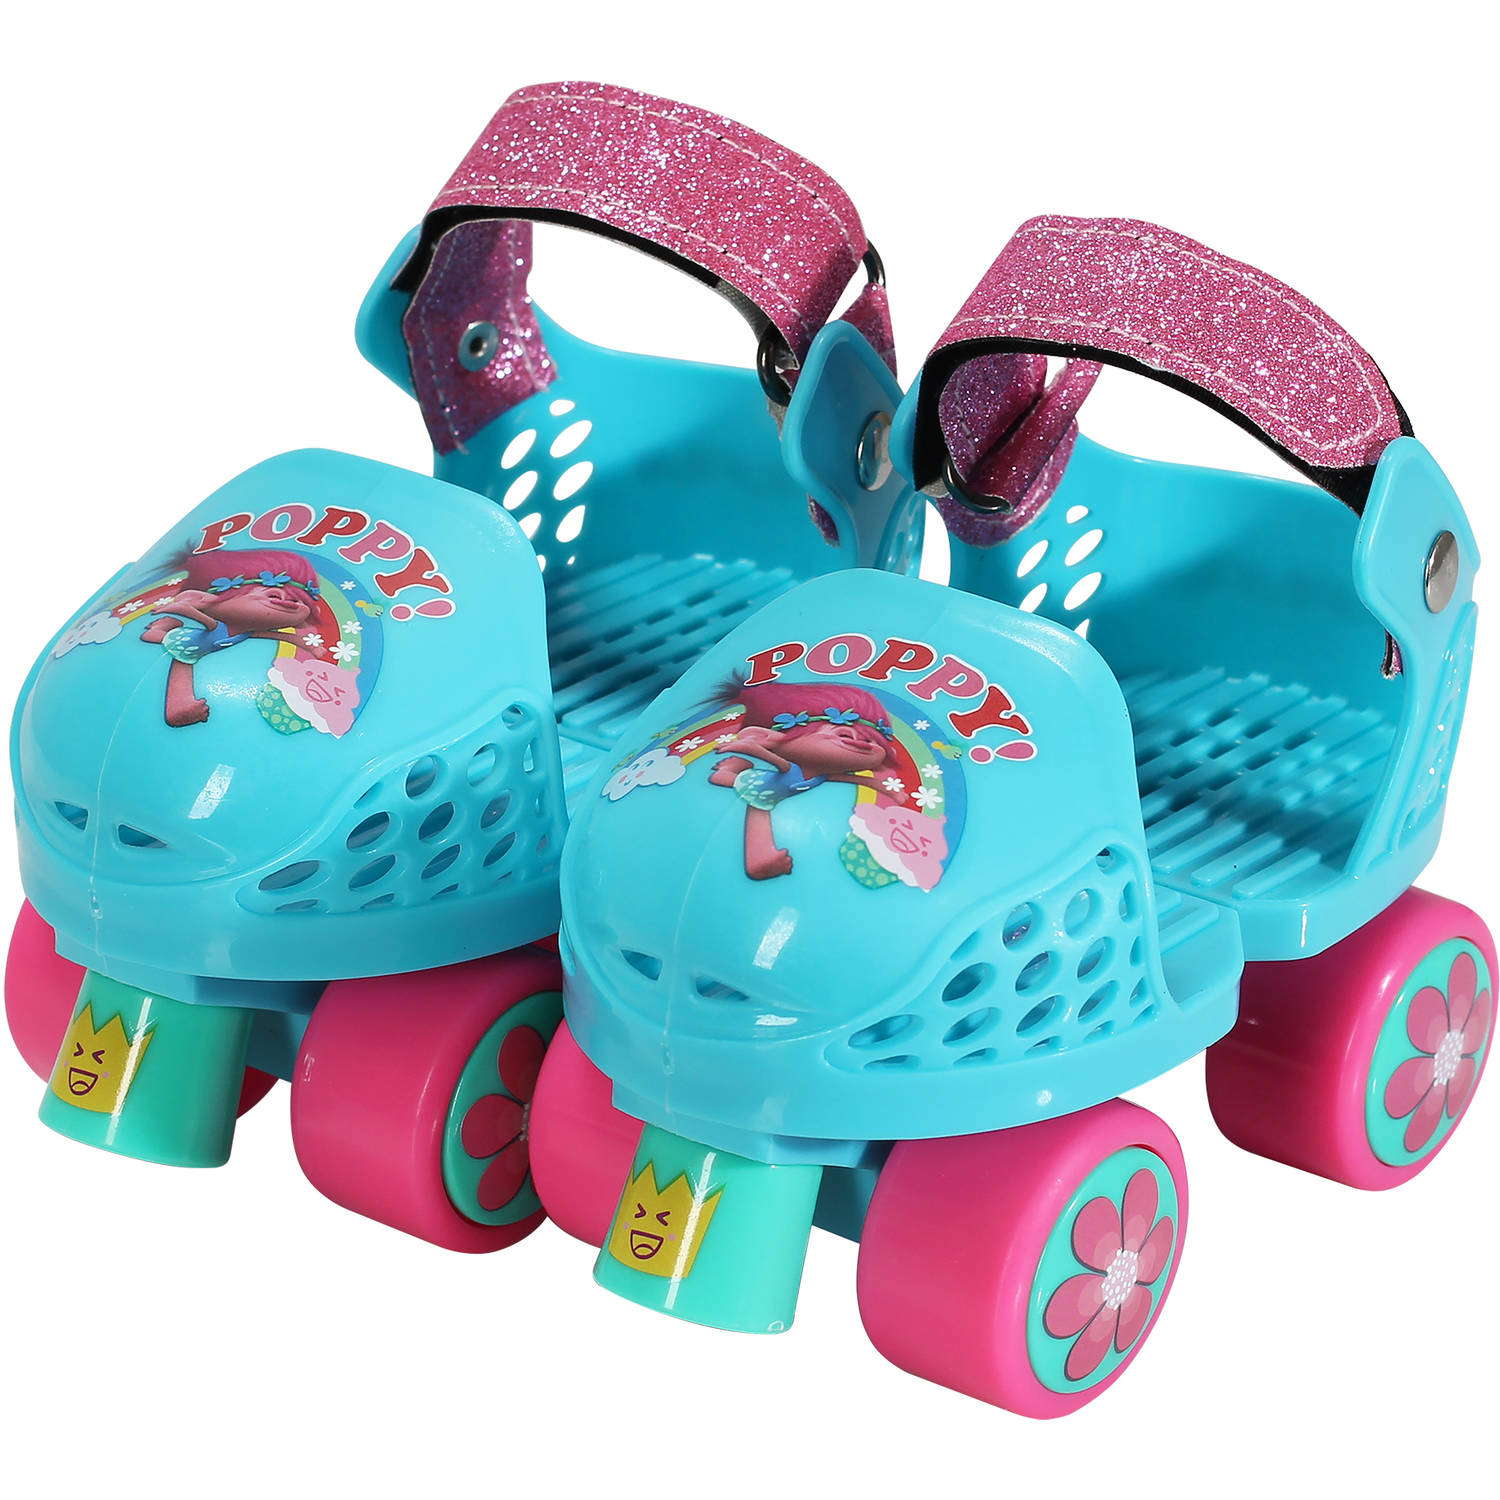 Playwheels Trolls Kids Roller Skate, Junior Size 6-12 with Kneepads